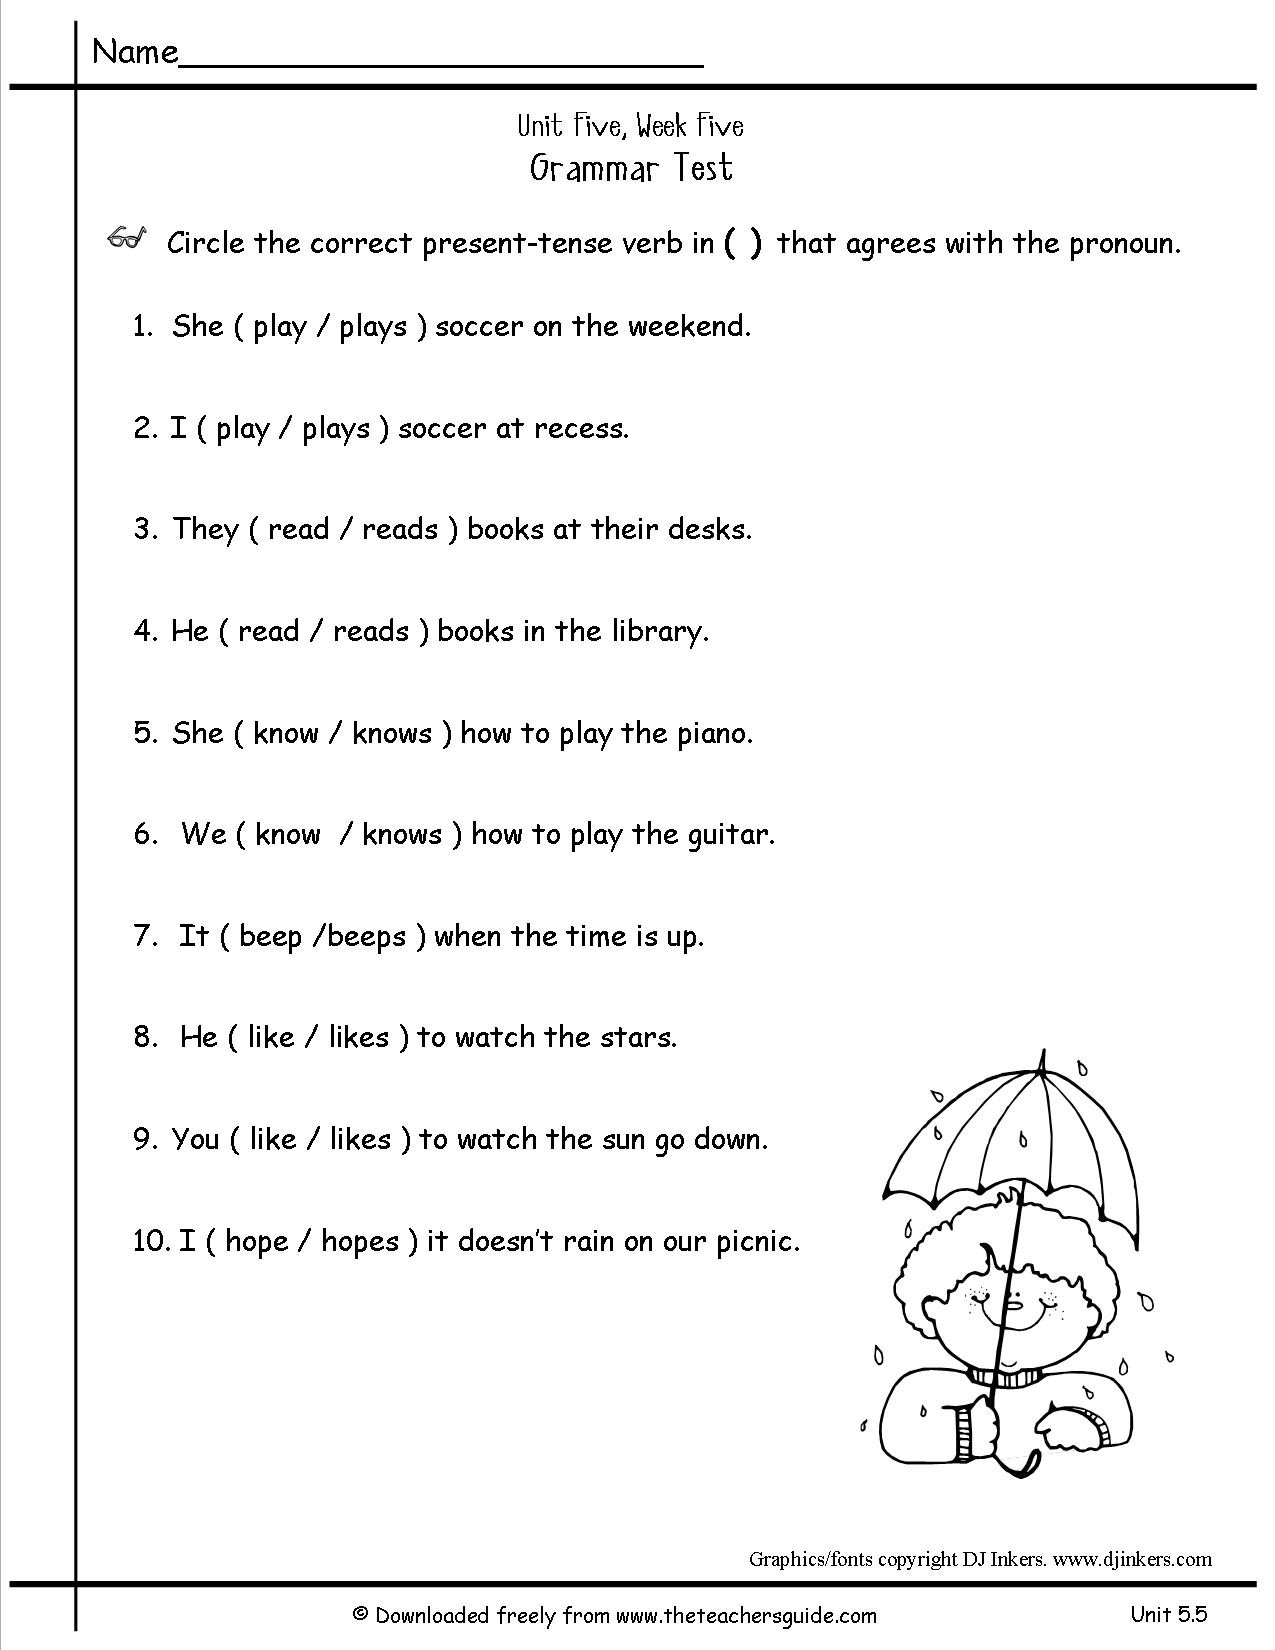 Pronouns Worksheet 2nd Grade Free Pronoun Worksheet for 2nd Grade